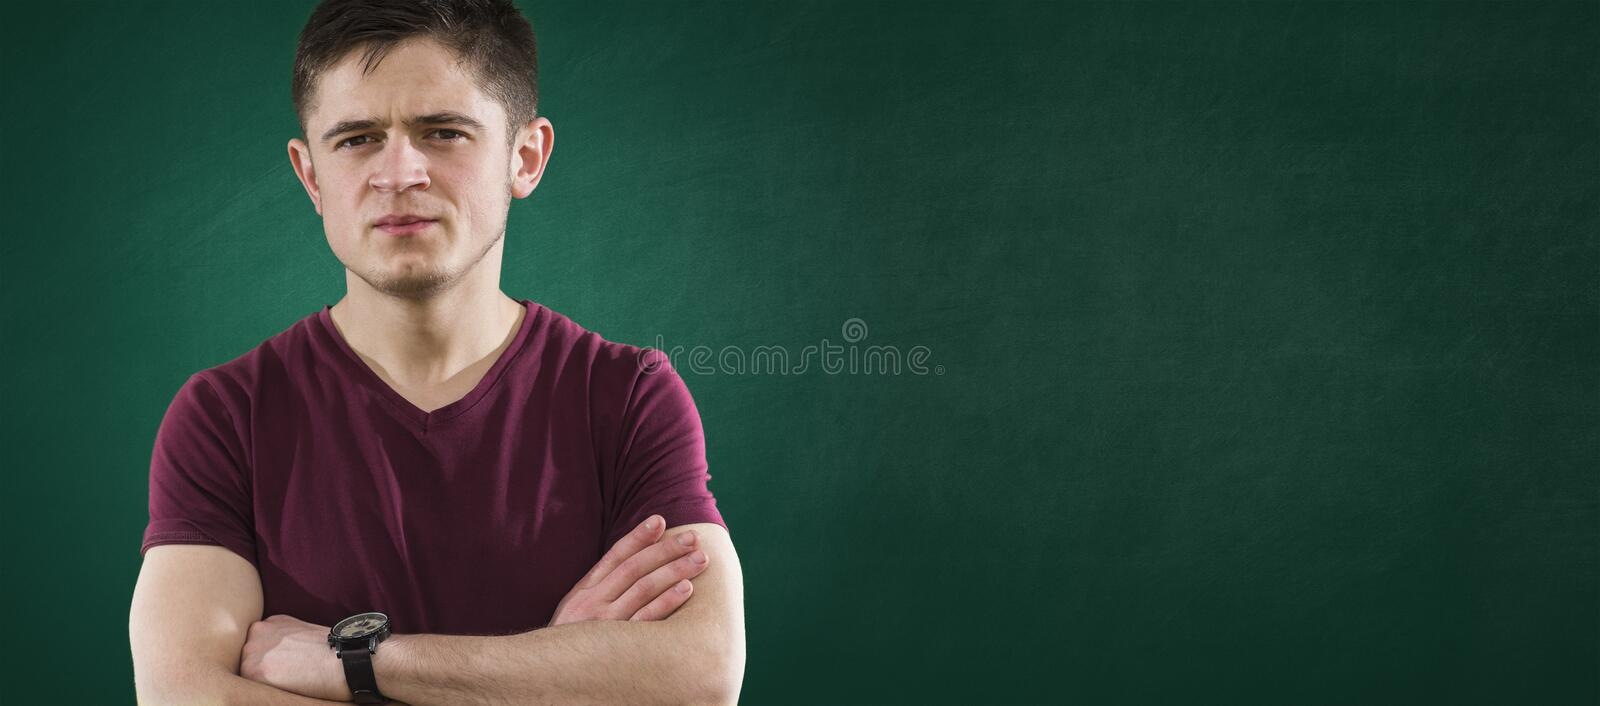 Download Student On Green Chalkboard Stock Image - Image: 40004055